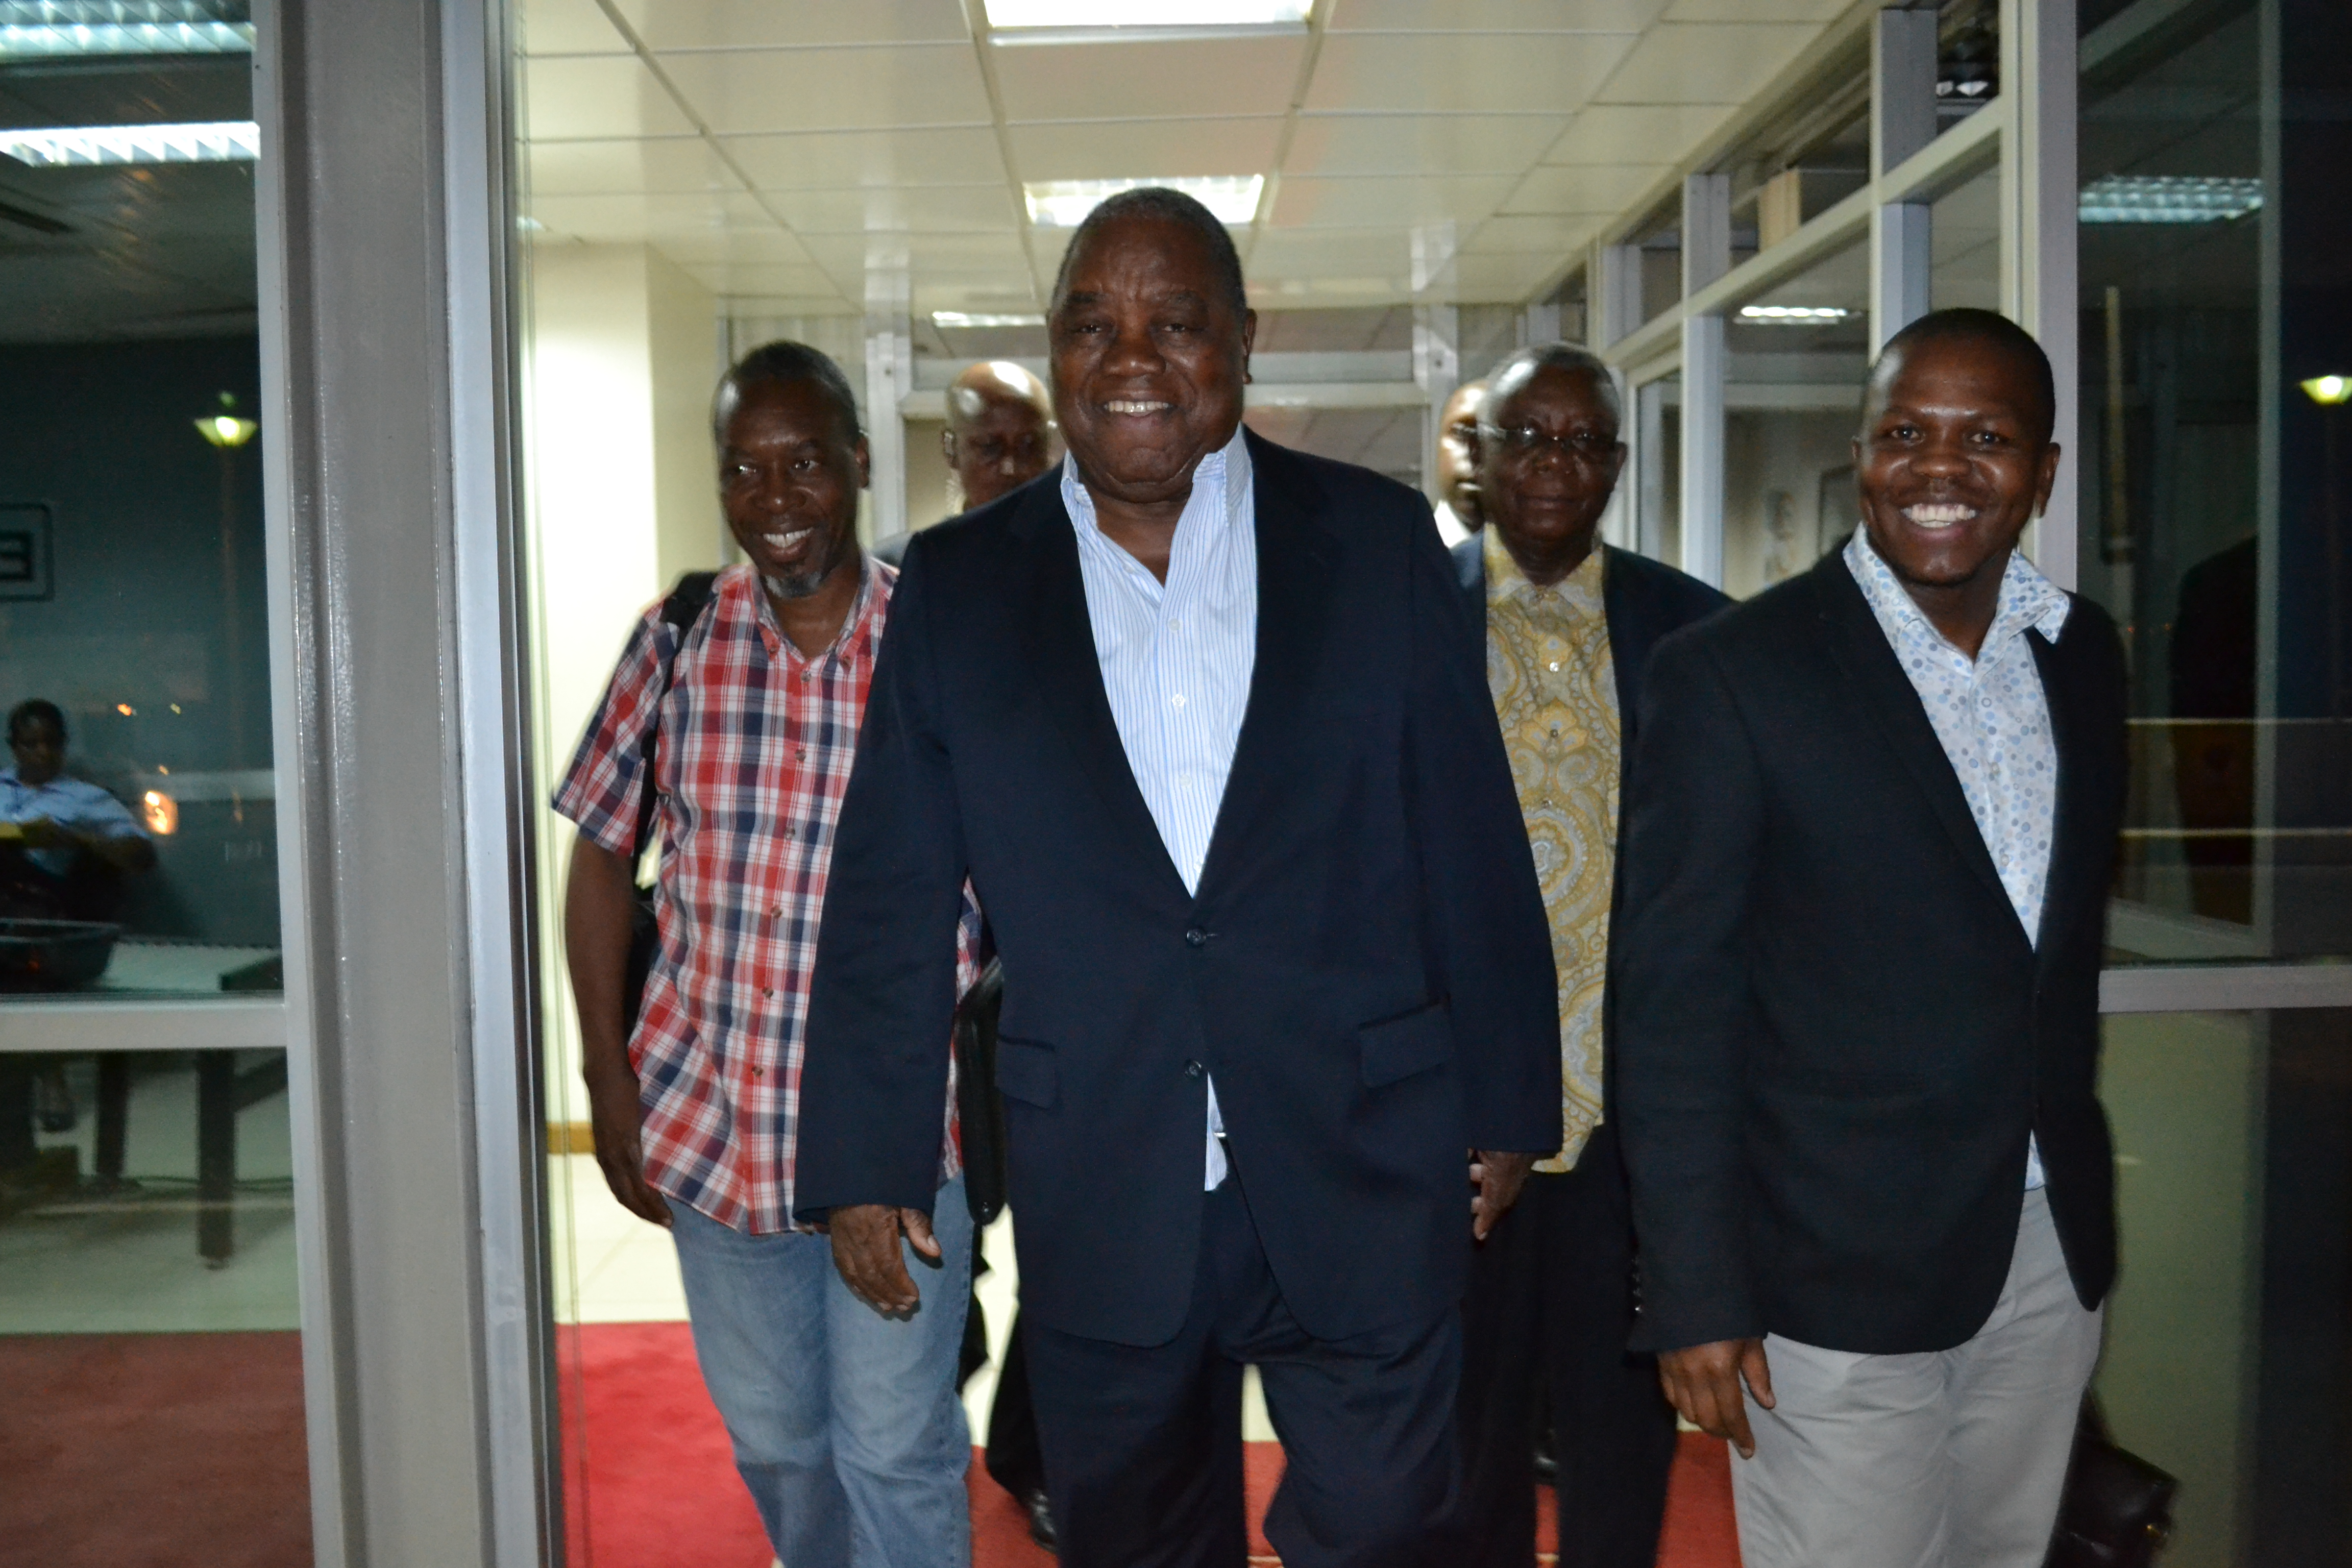 Arrival of Mission Leader, Former Zambian President Rupiah Banda